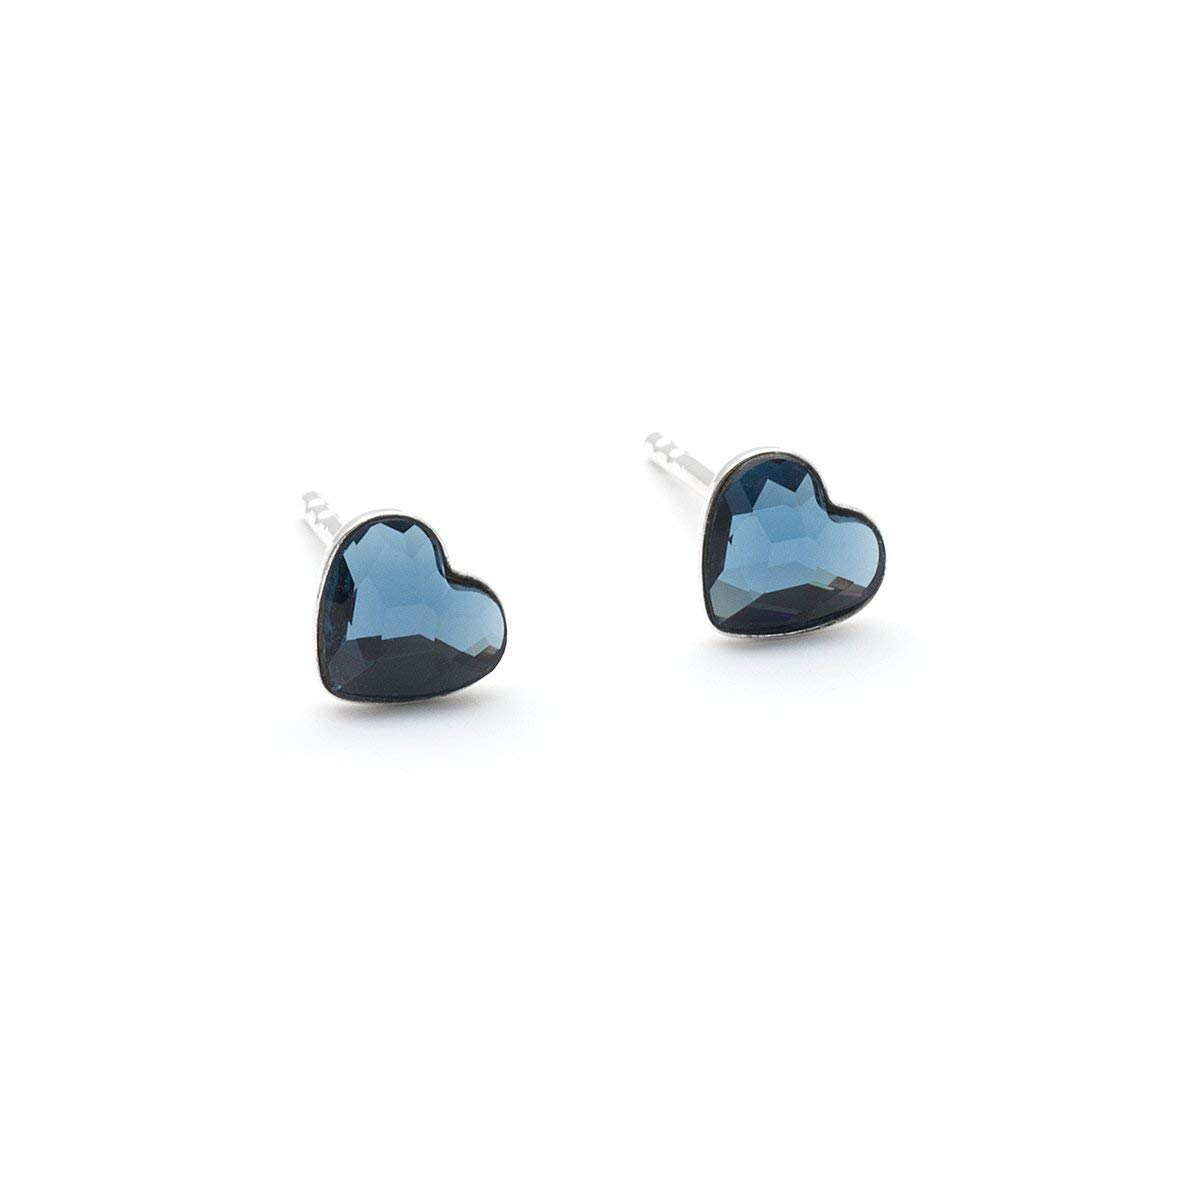 Tiny denim blue Swarovski Heart dainty stud crystal 6mm sterling silver 925 post earrings